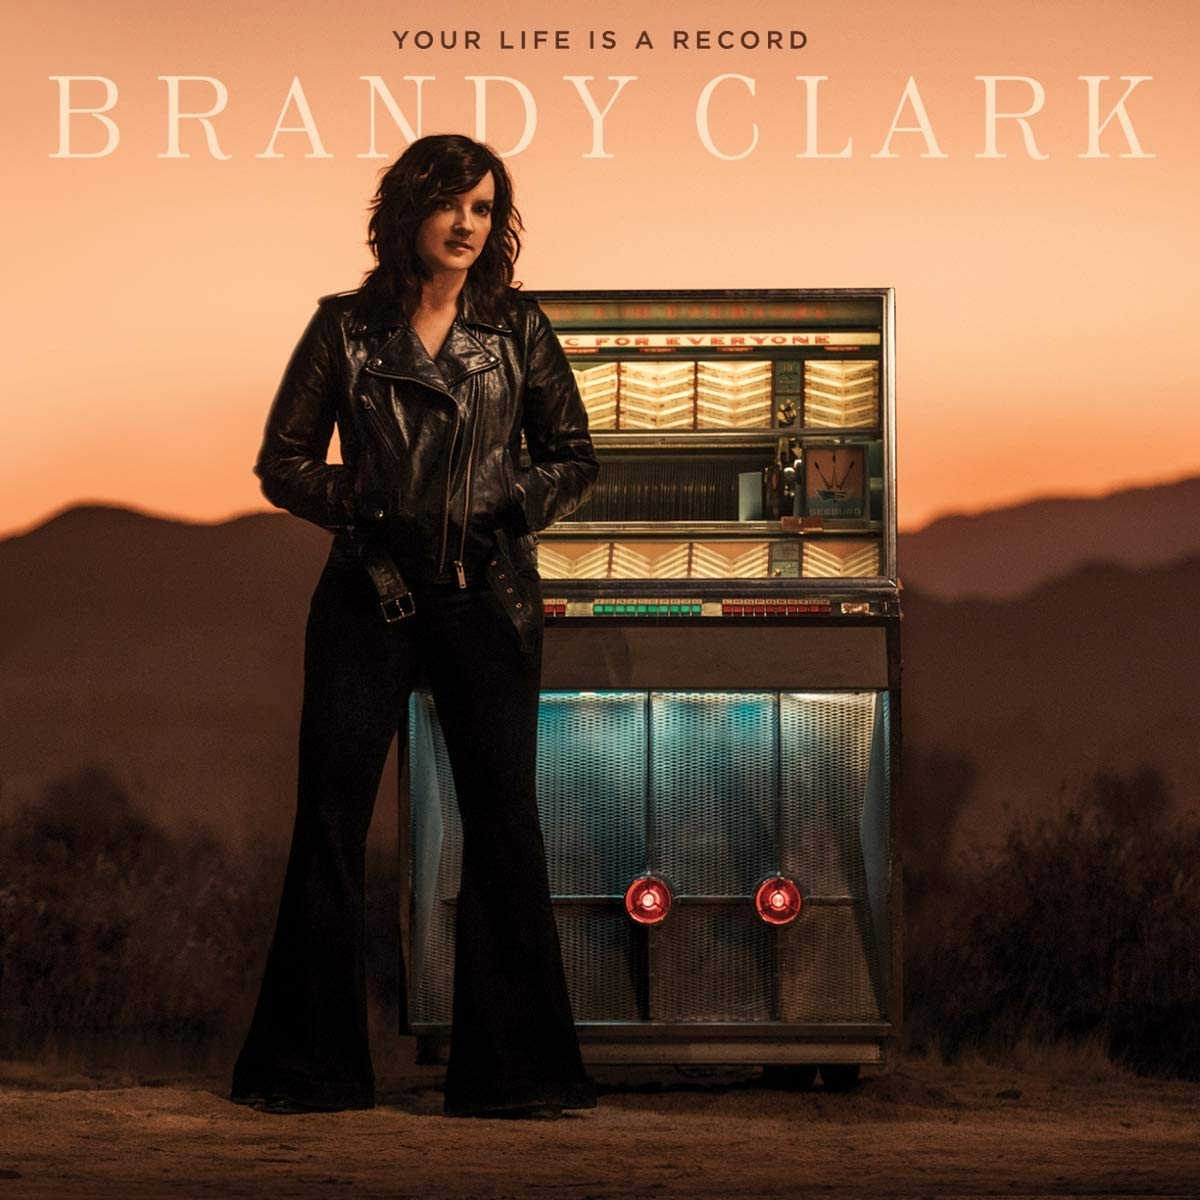 Brandy Clark - Your Life Is A Record (2020) [FLAC] Download